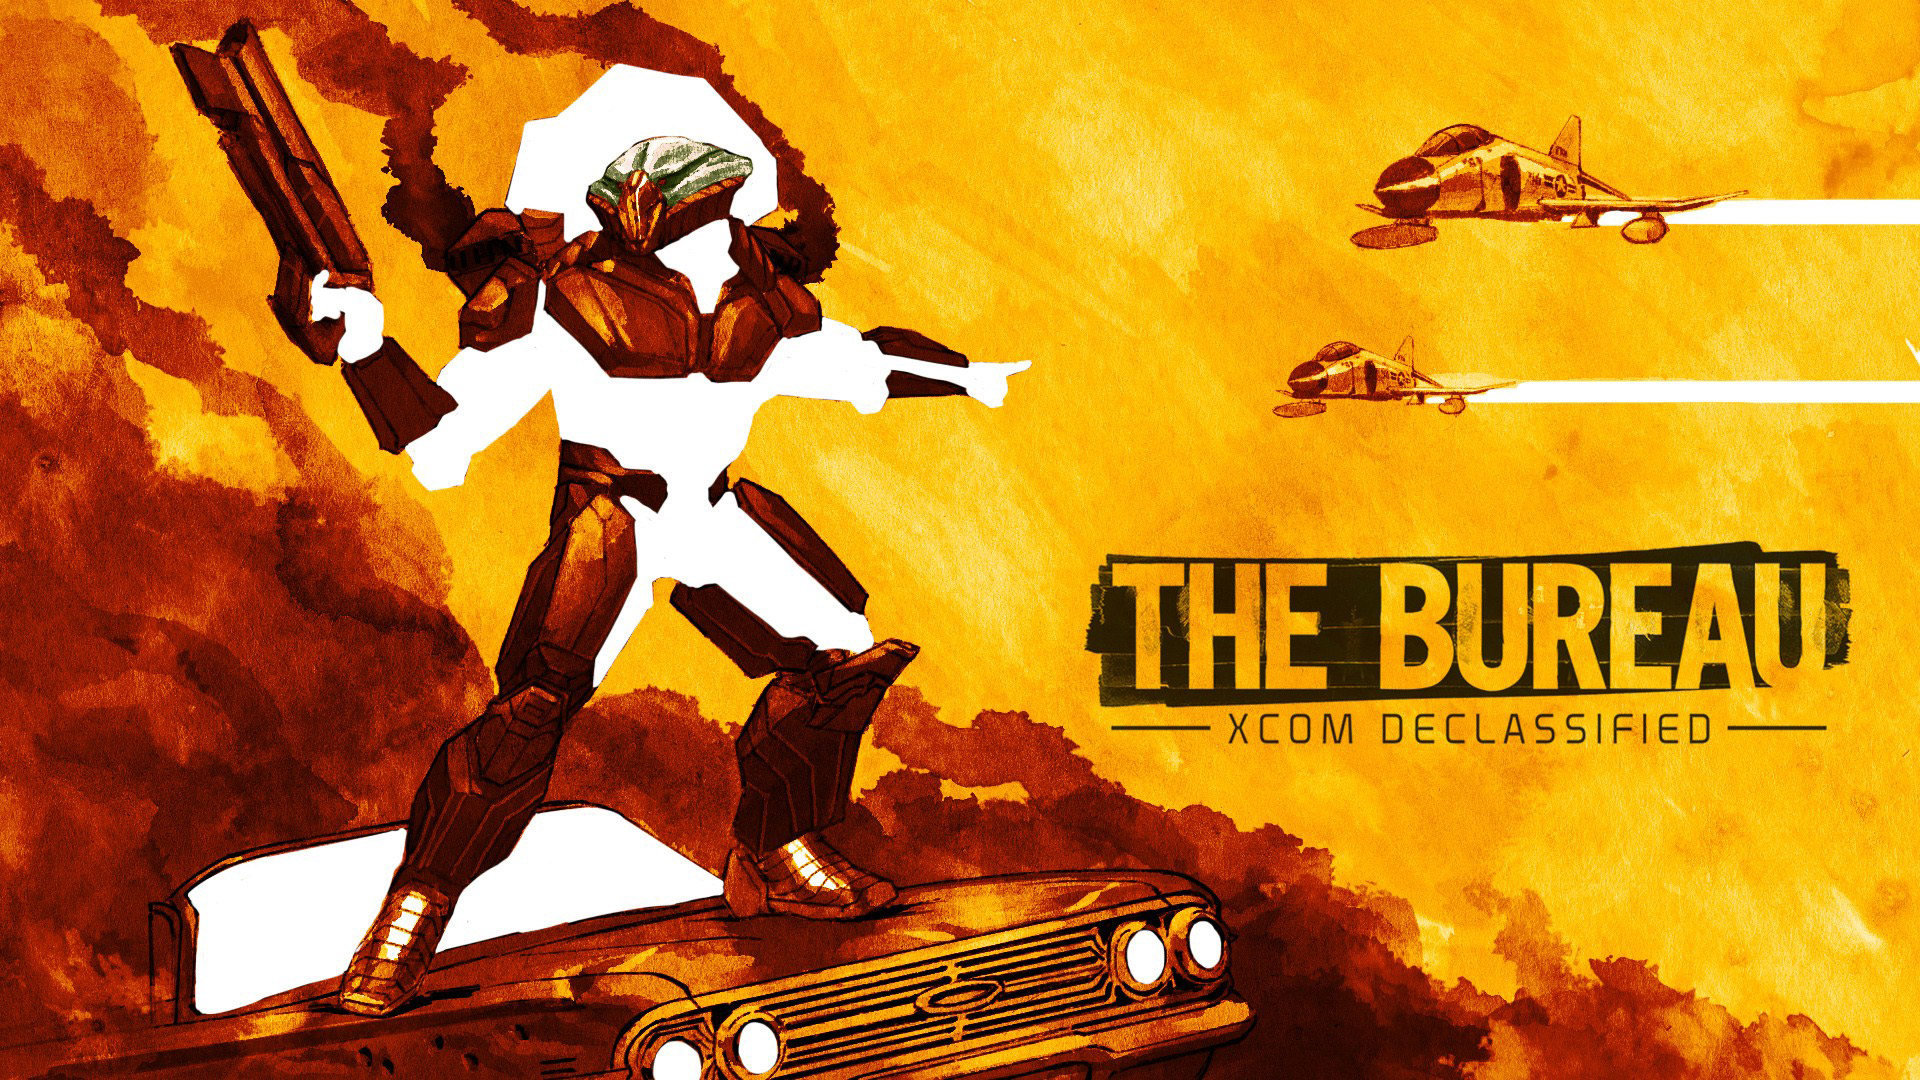 The Bureau: XCOM Declassified Wallpaper in 1920x1080